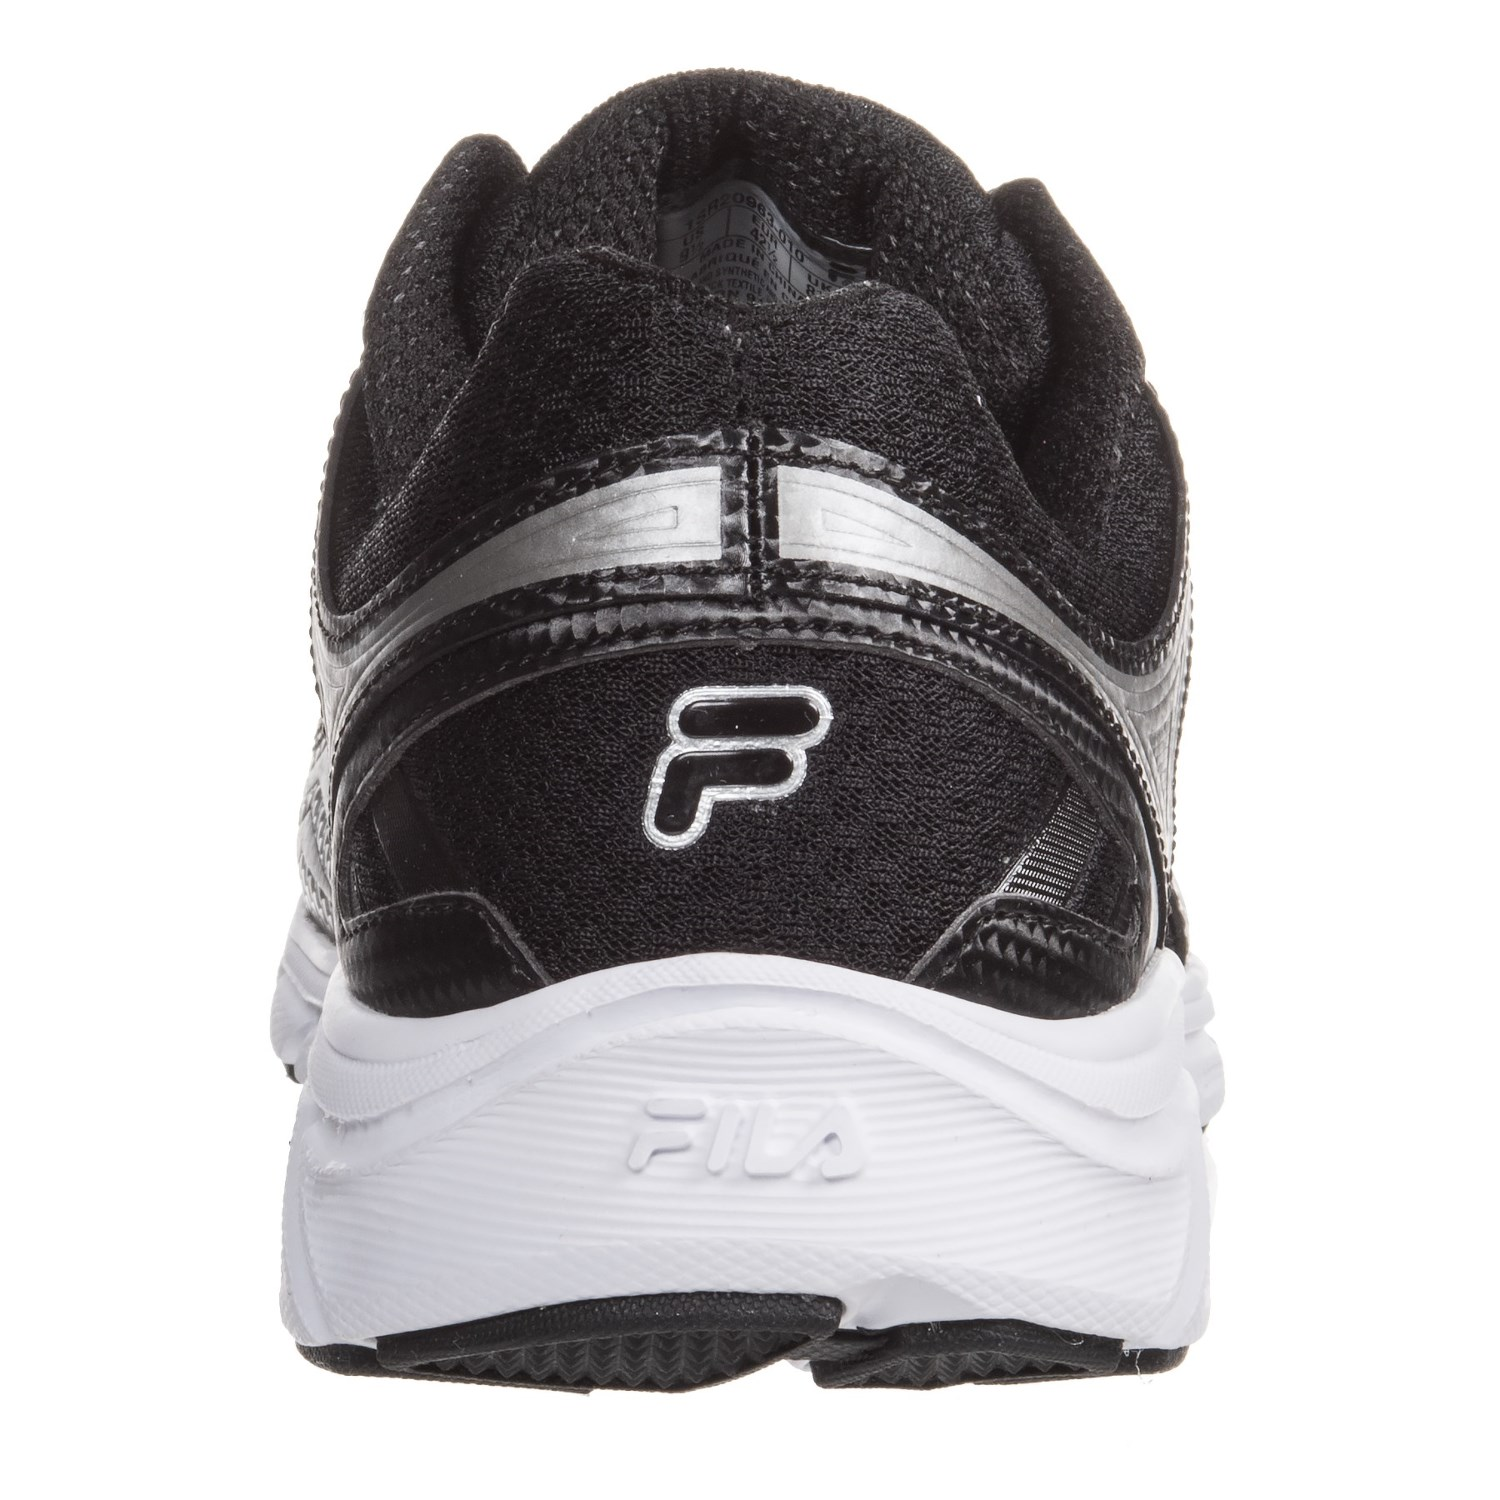 Are Fila Good Running Shoes